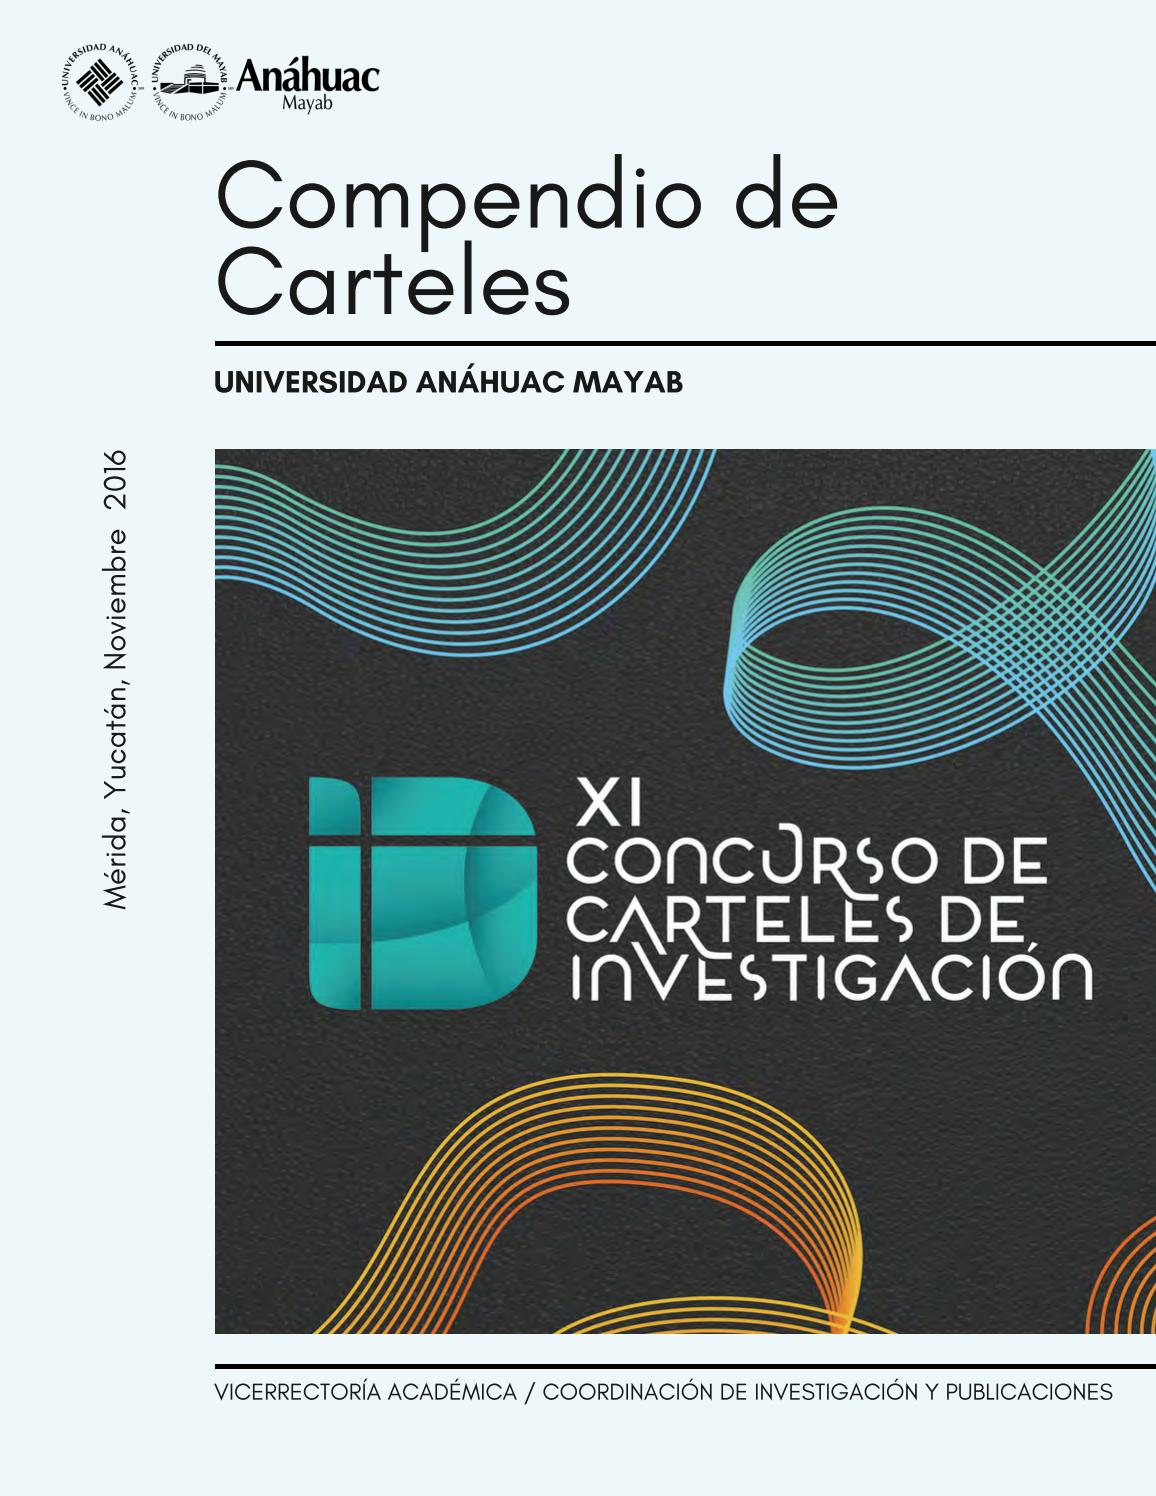 Compendio de Carteles by Universidad Anáhuac Mayab - issuu